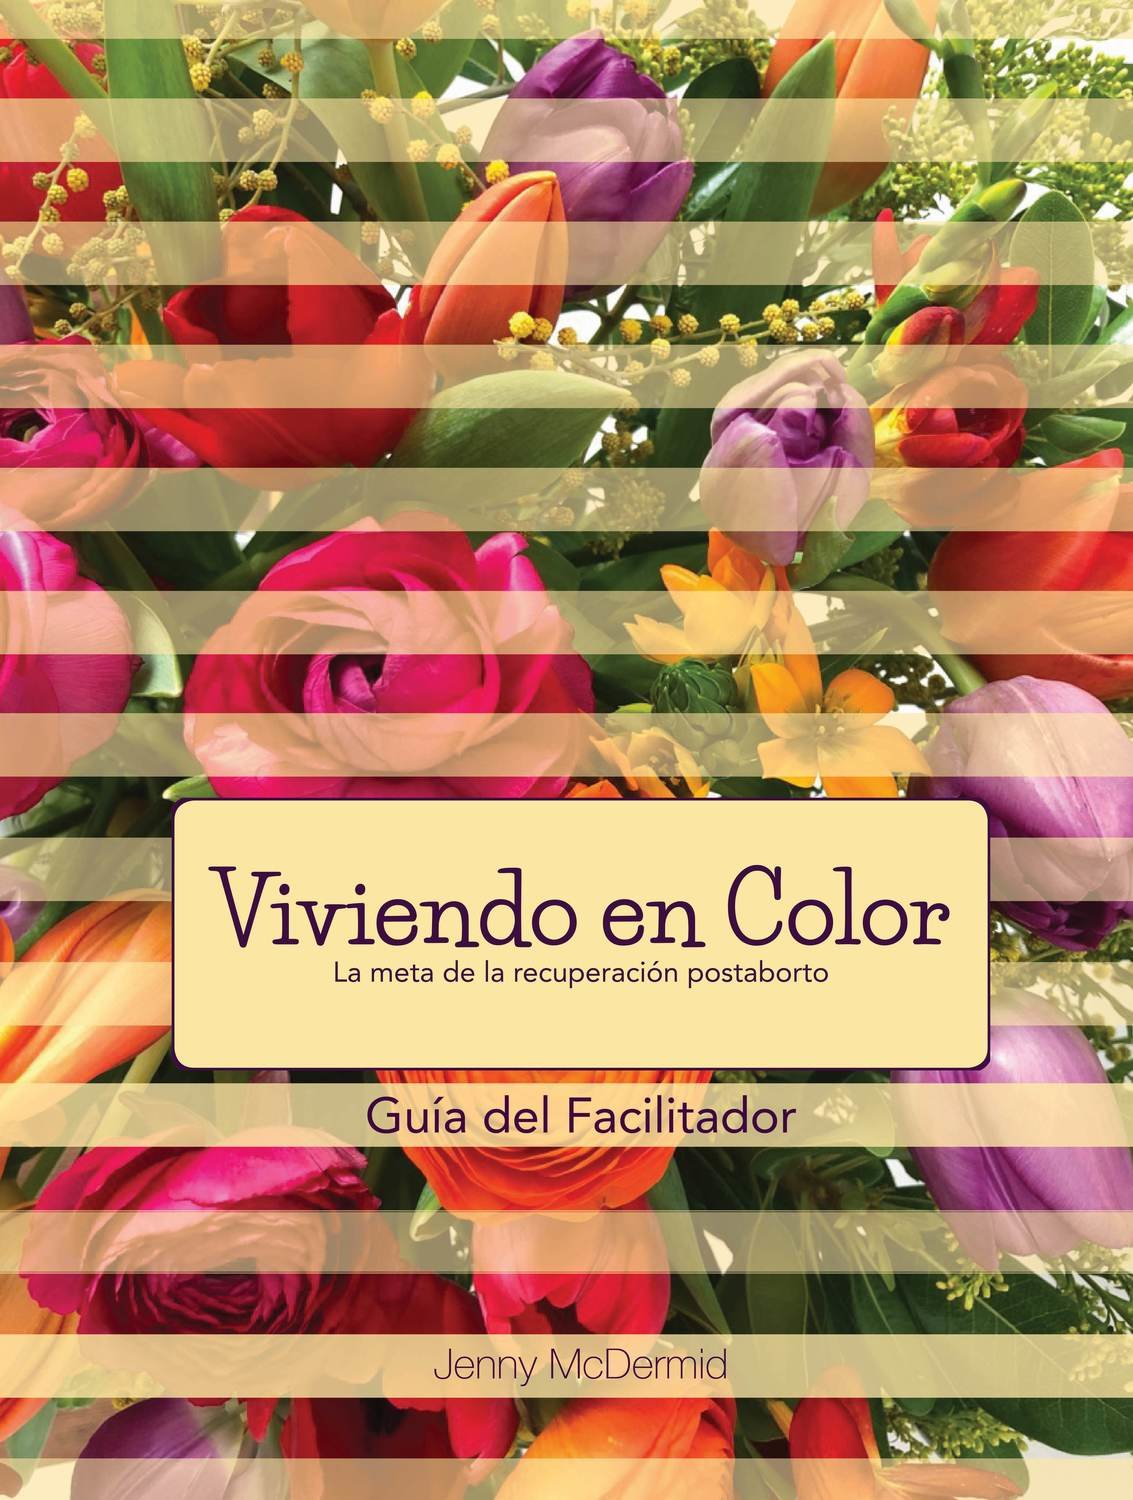 Viviendo en Color - Guia del Facilitador PDF (download)